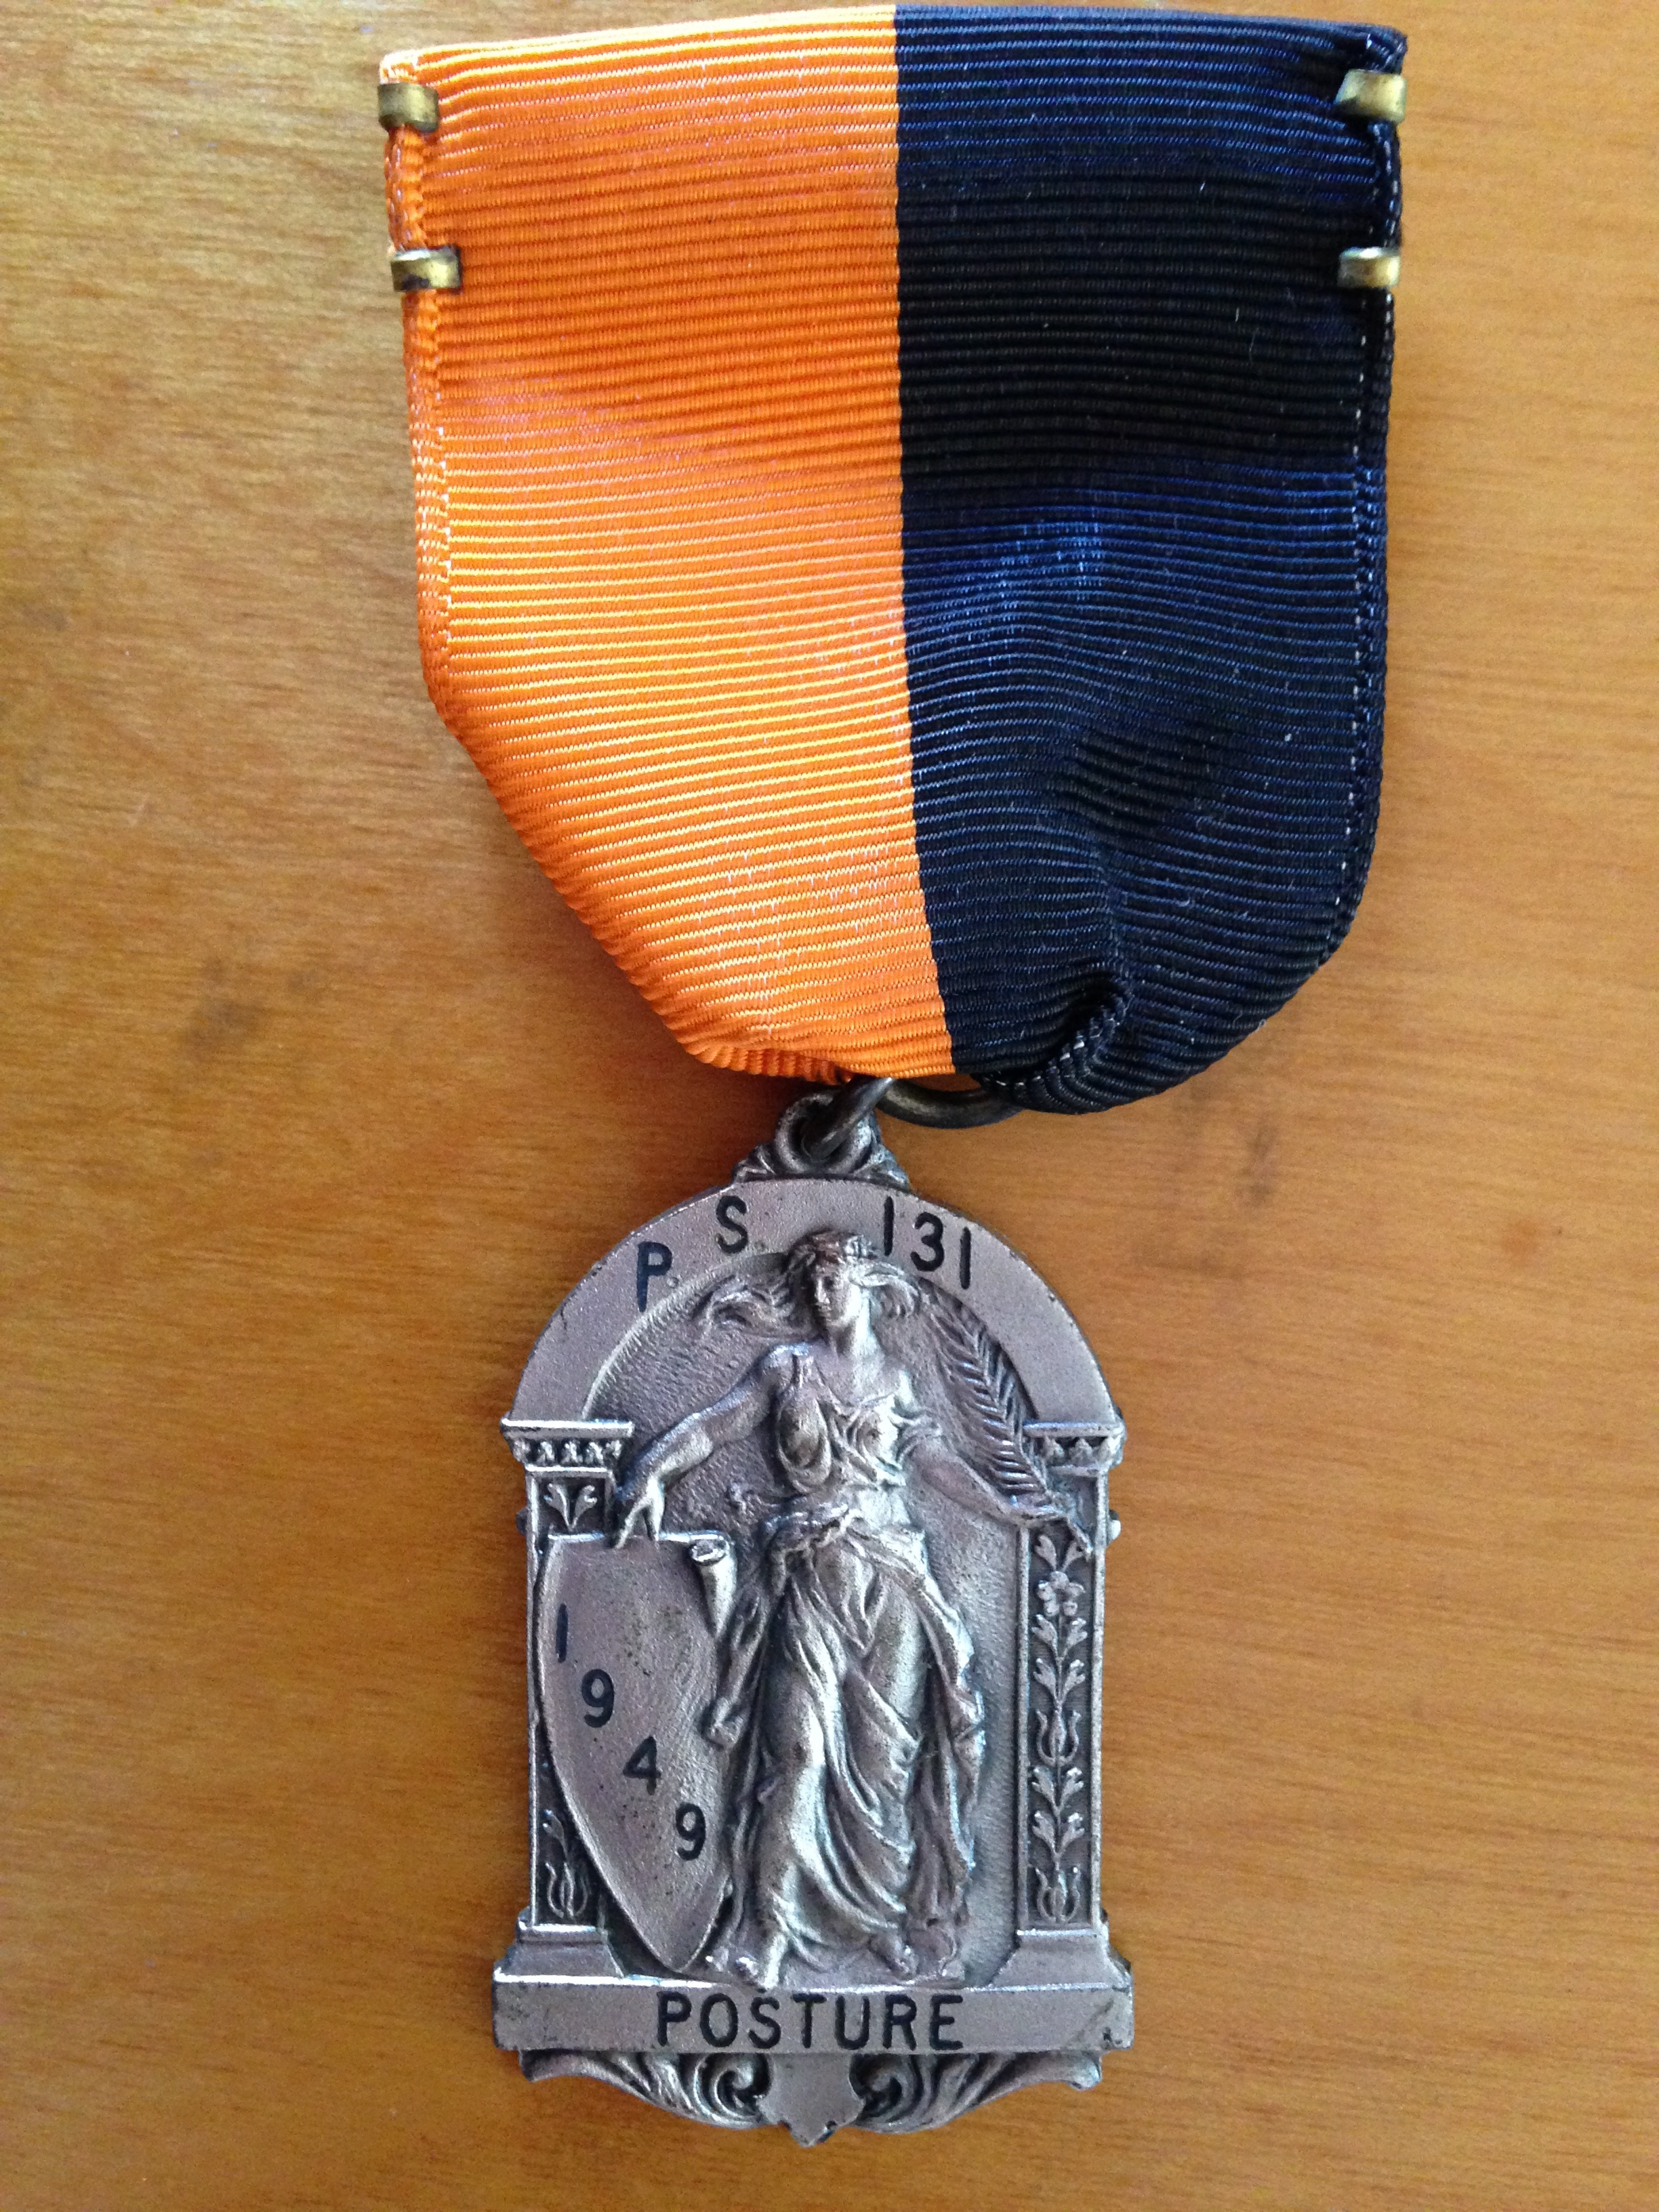 Alm'as Posture Medal from P.S. 131 in Queens, 1949